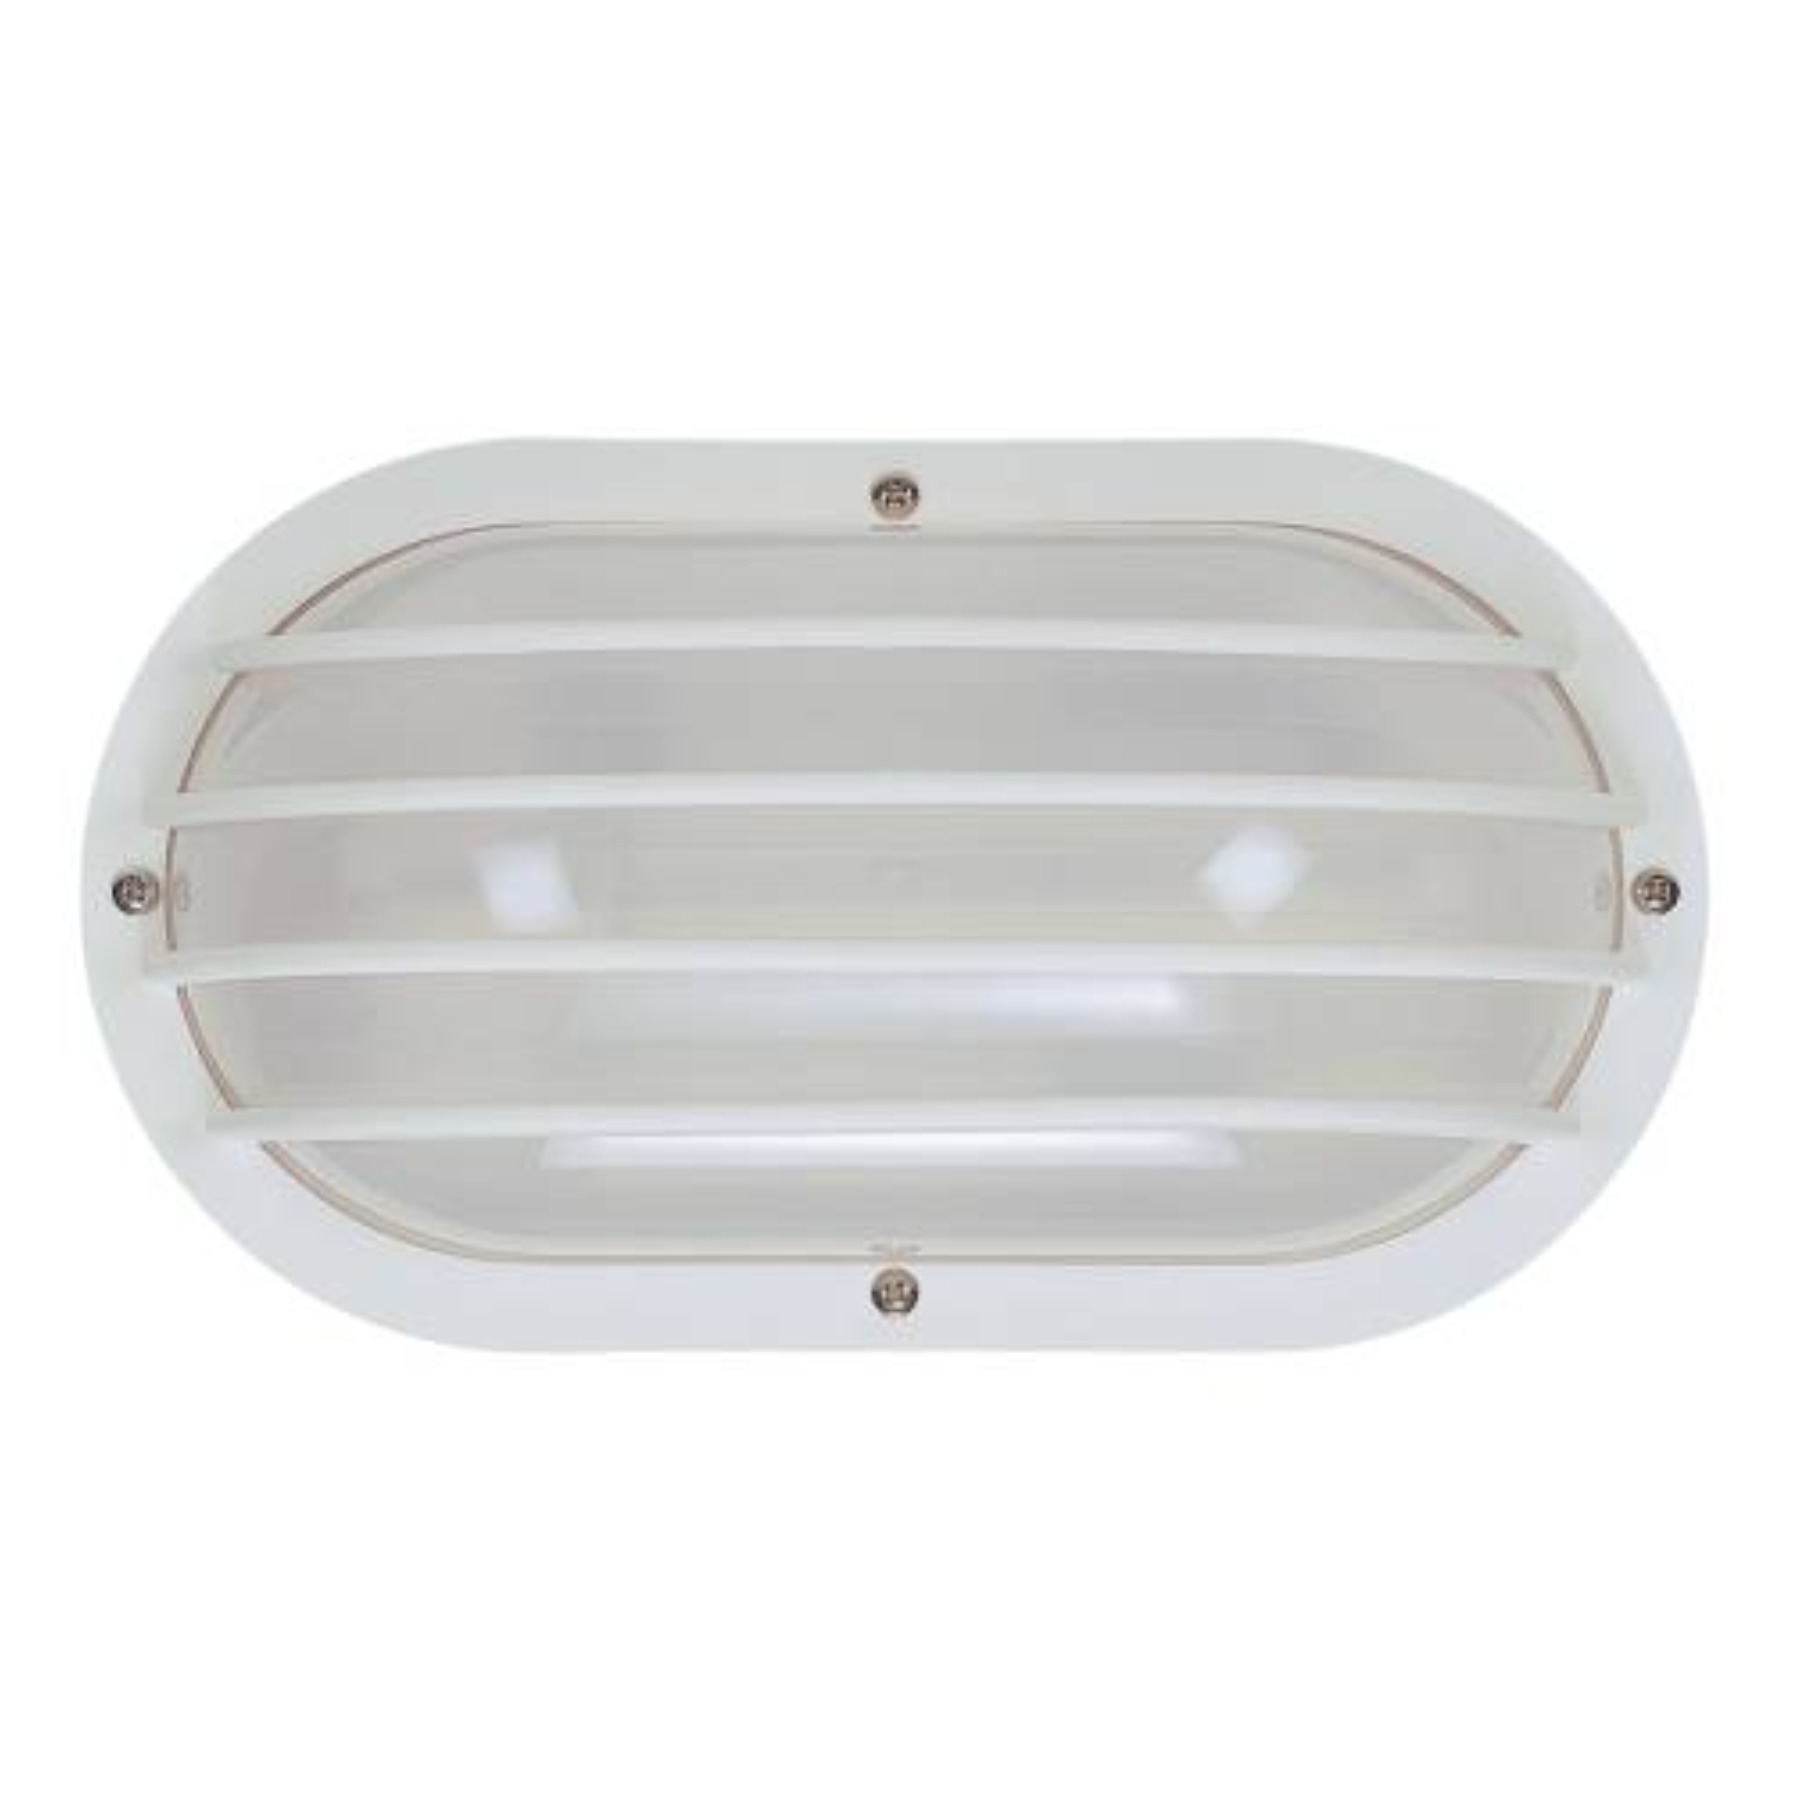 INTERGLOBAL PRODUCTS NAUTICAL-STYLE CEILING / WALL LIGHT FIXTURE, WHITE, 10X5X3-7/8 IN., 1 13-WATT CFL LAMP (INCLUDED)